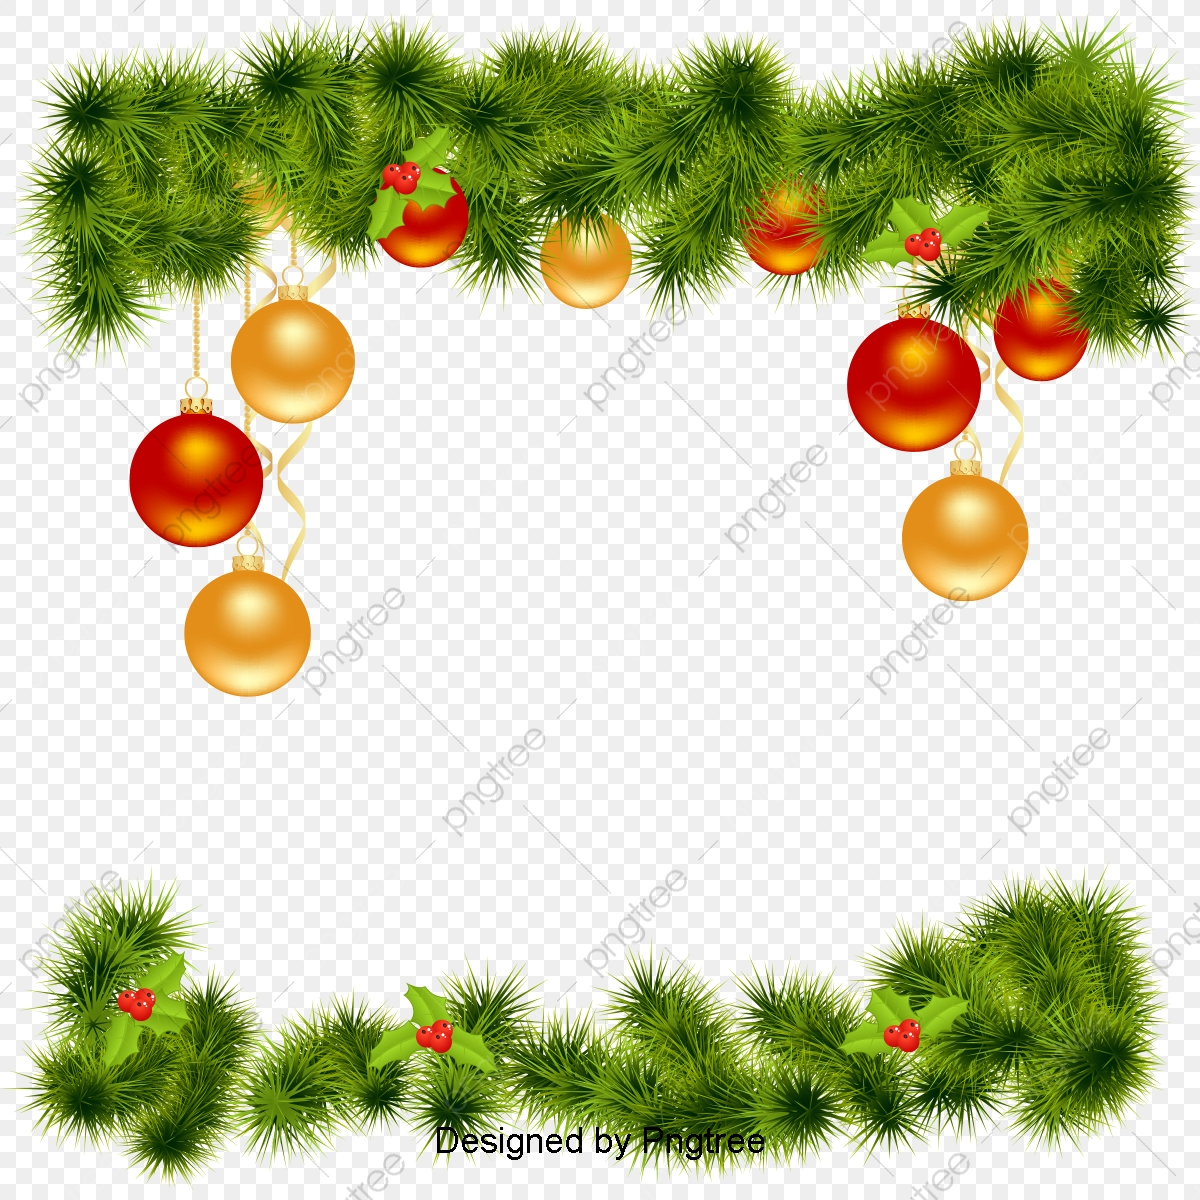 Vector Christmas Border, Pine, Flower, Christmas Elements